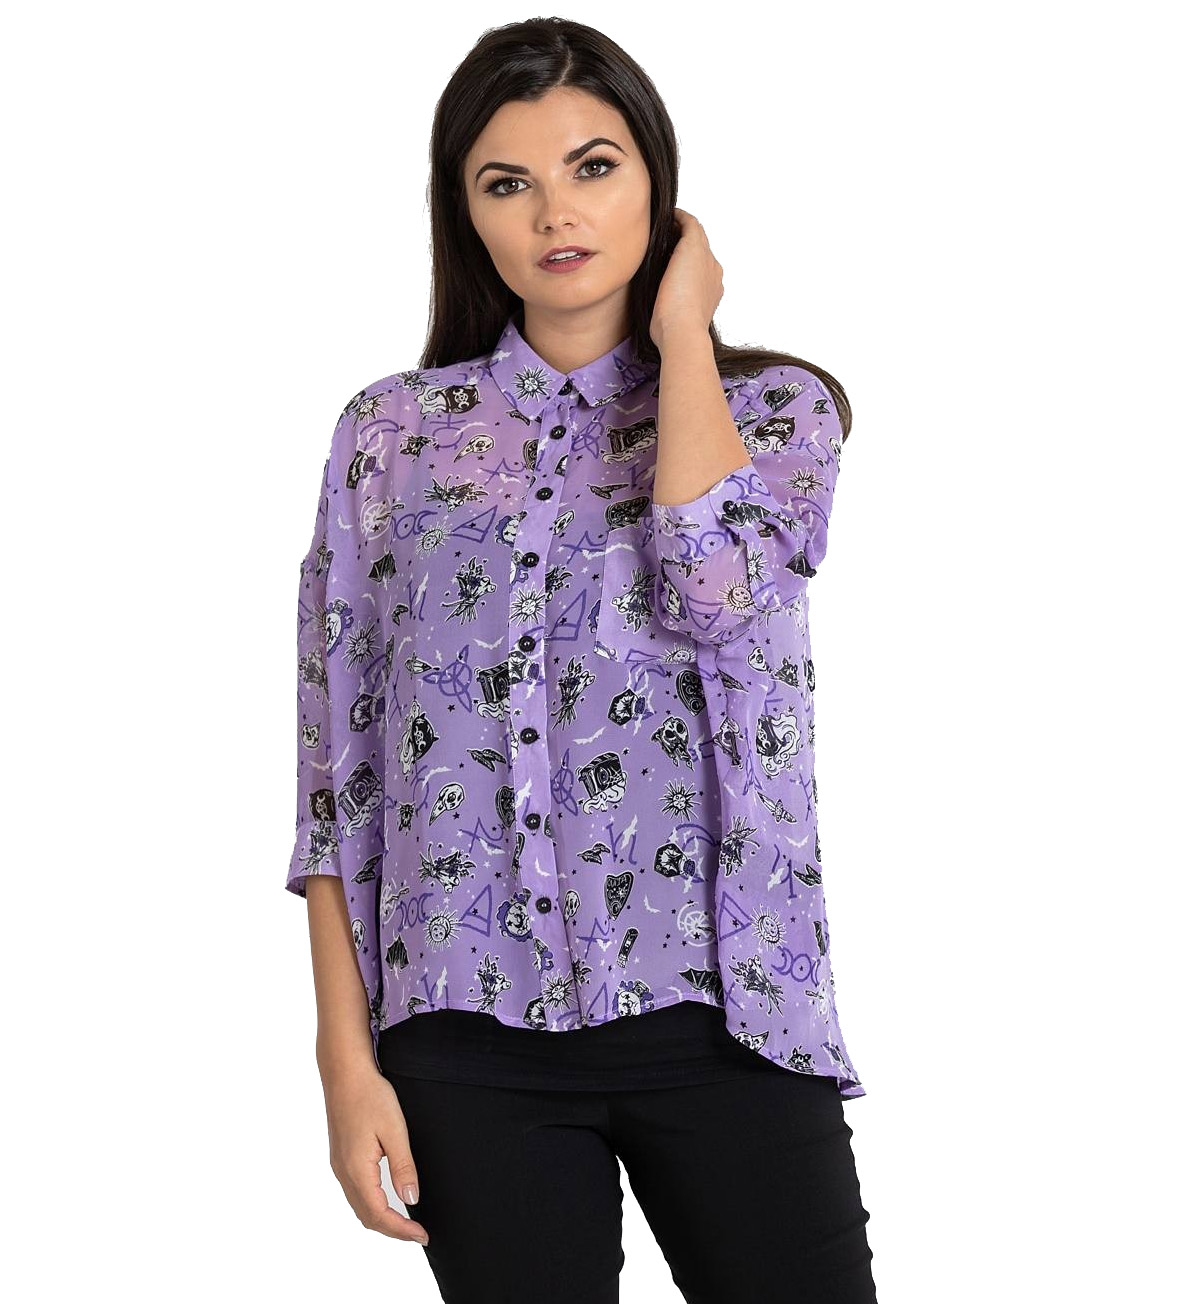 Hell-Bunny-Shirt-Top-Gothic-Witchy-ELSPETH-Lavender-Purple-Blouse-All-Sizes thumbnail 7